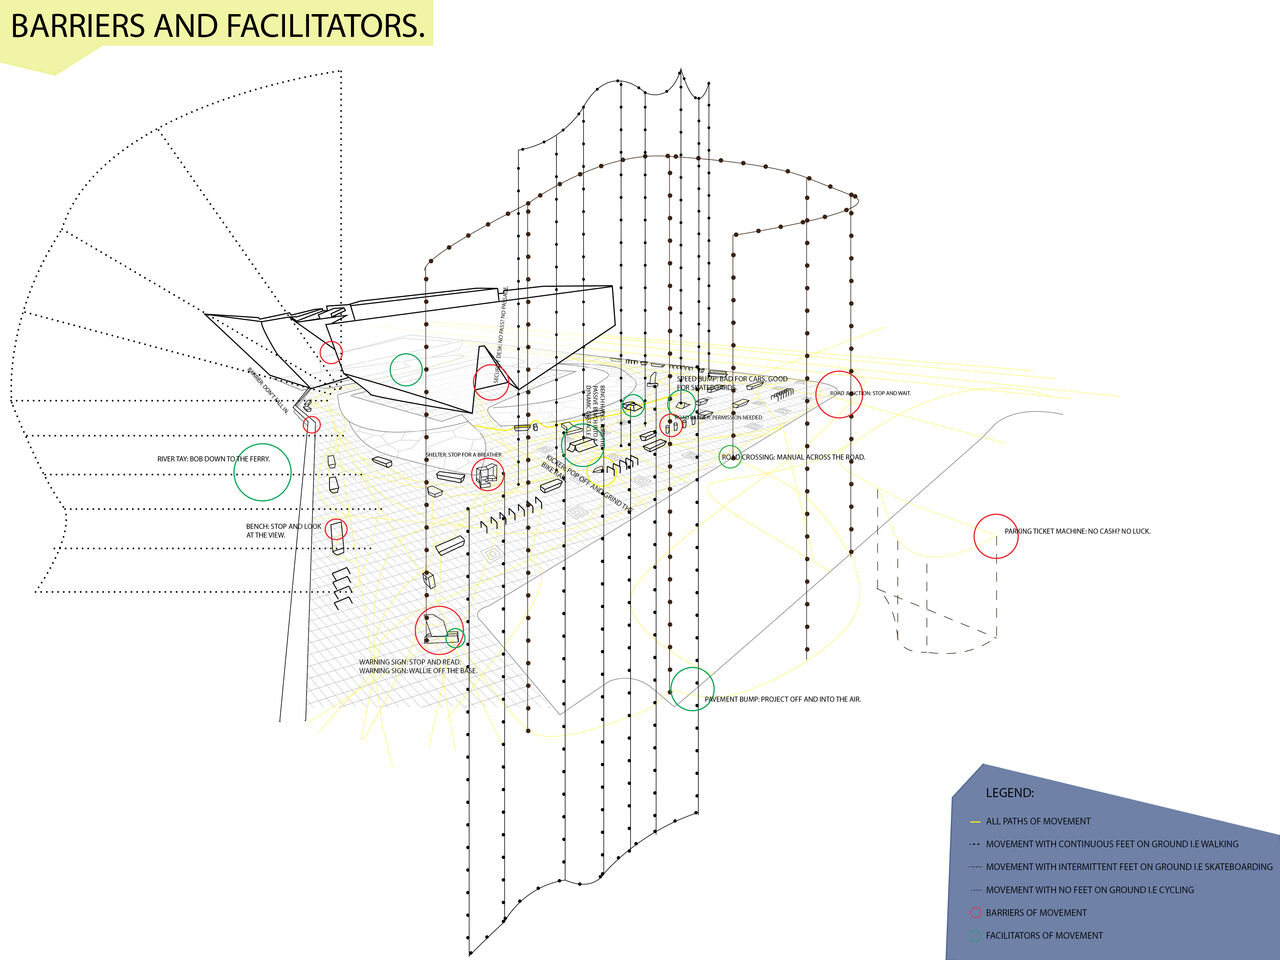 A technical drawing representing different paths of movement around V&A Dundee's building and environs.